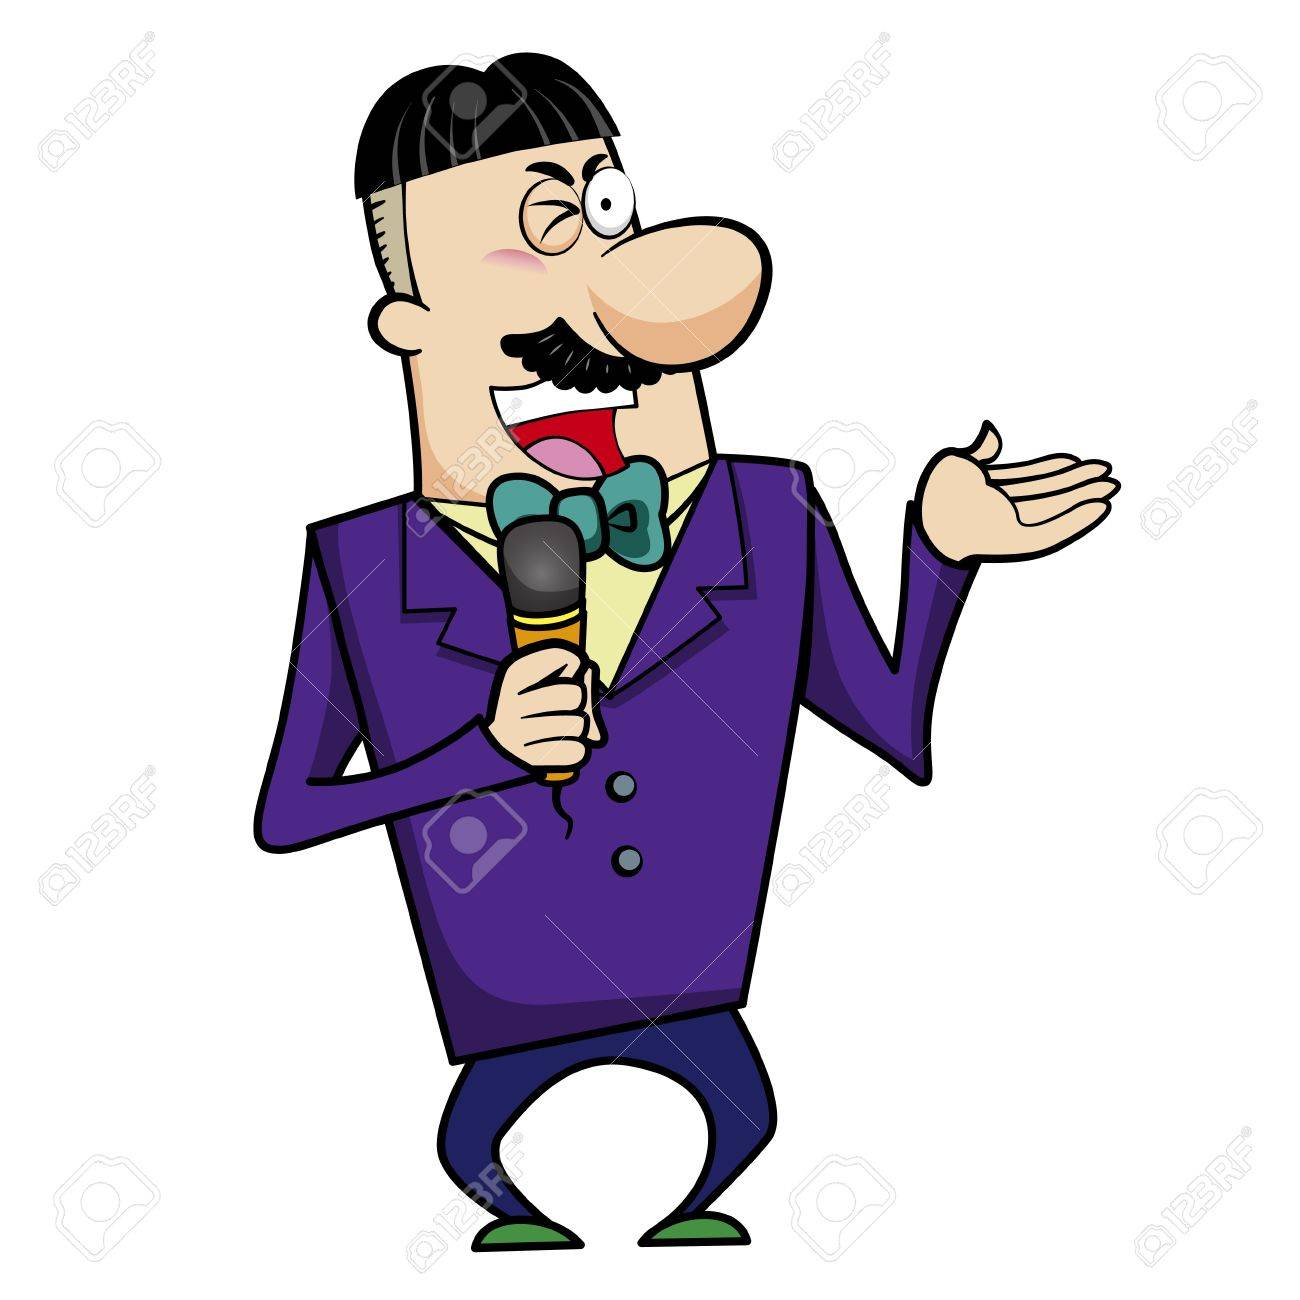 Vector illustration of a television host or event emcee holding a microphone Stock Vector - 18437000